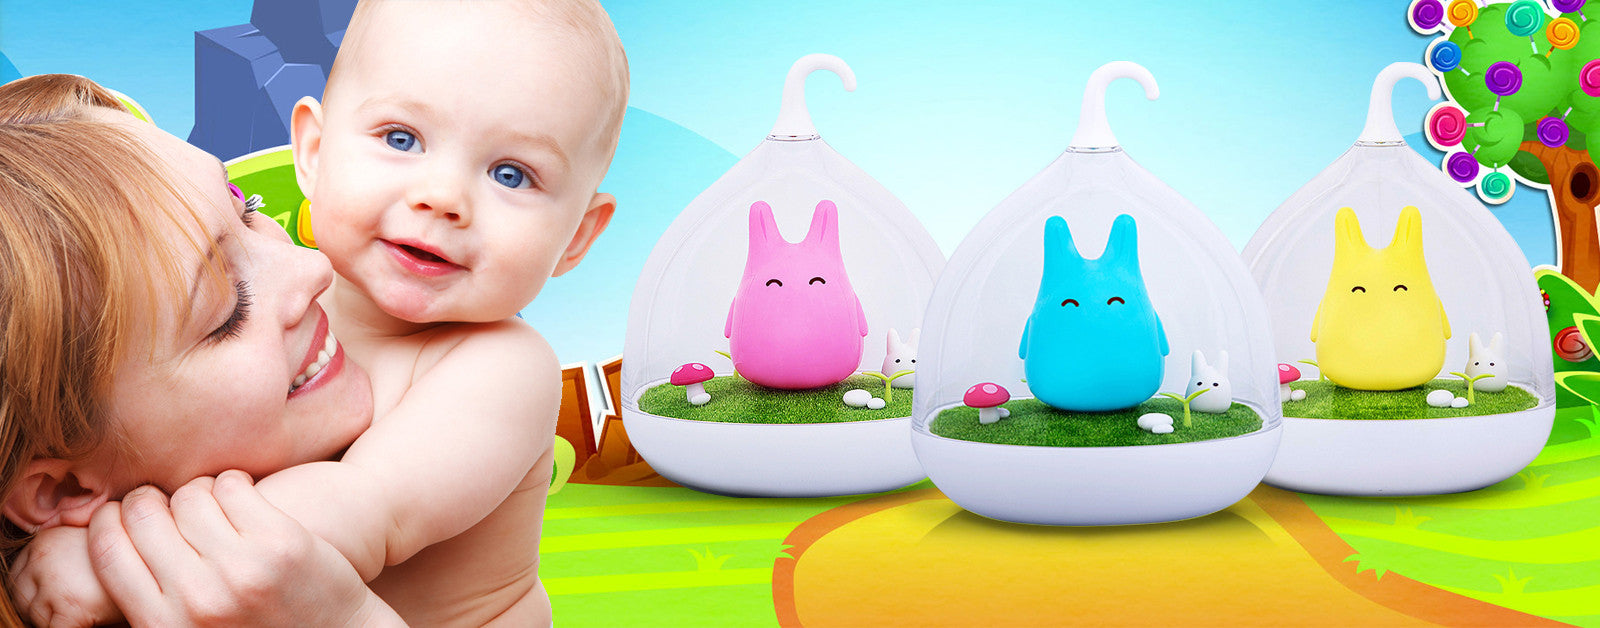 Afraid of the Dark? Get this Adorable Touch Sensor LED Night Lights for Babies, Kids & Young Adults Too!